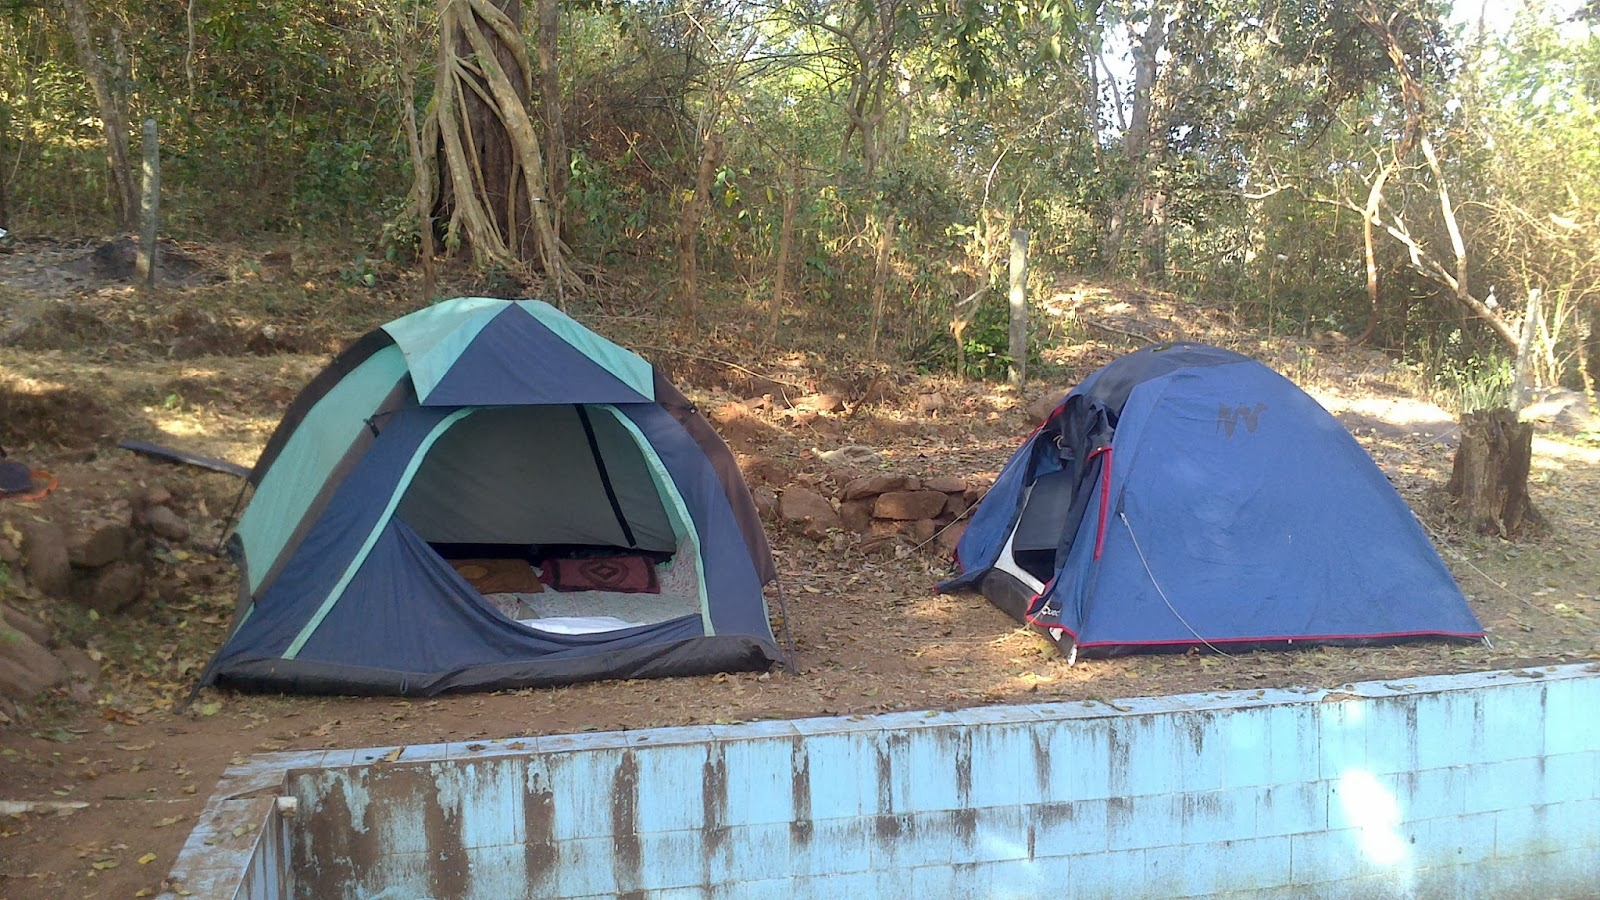 If you fancy spending a night in tents you can opt for tent stay. & Dandeli Jungle Camp-stay in the wild - eNidhi India